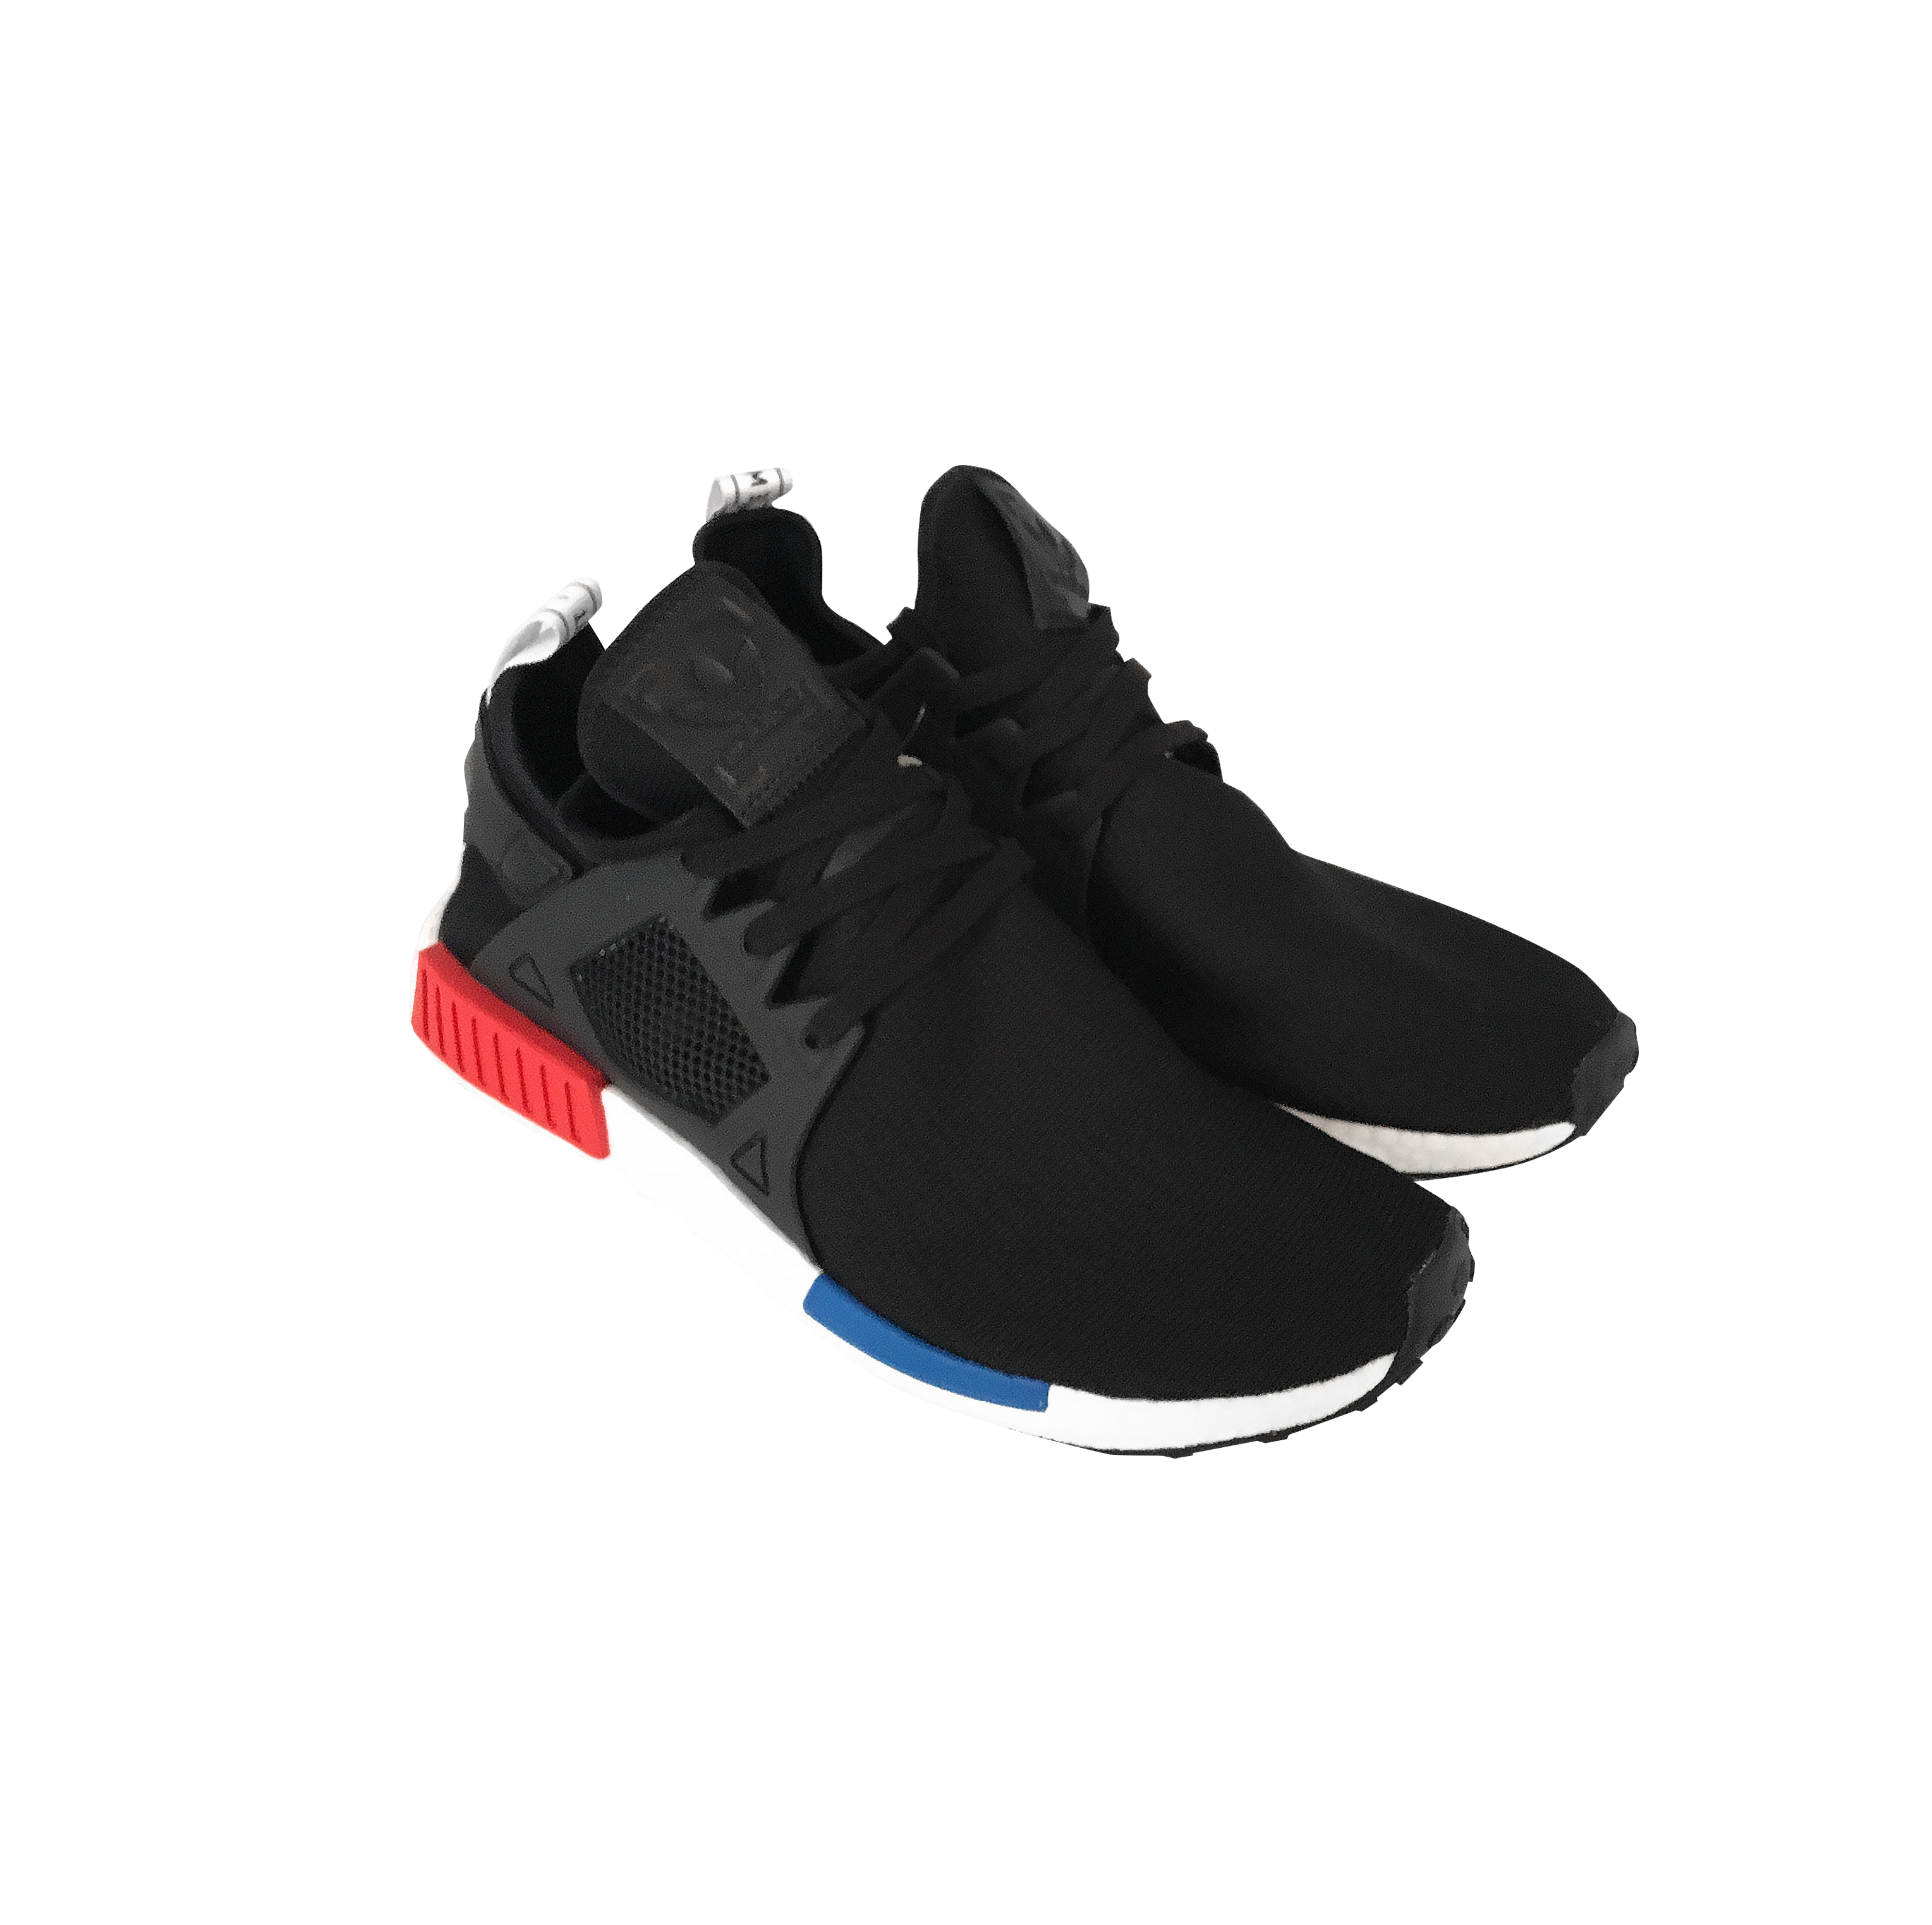 Exquisite Threadz Desirable Clothing Options Adidas Nmd Xr1 Og